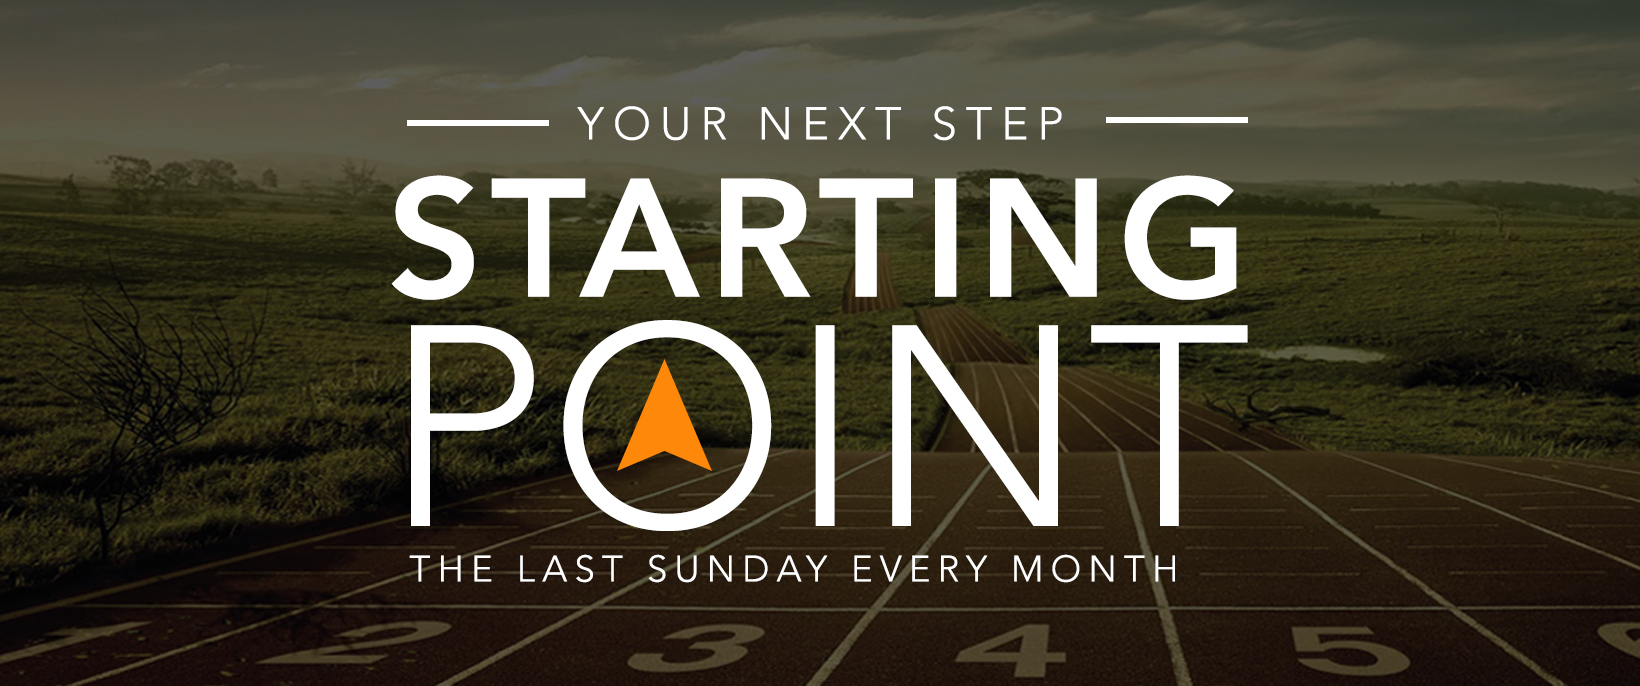 Next Starting Point is Sunday, June 2nd